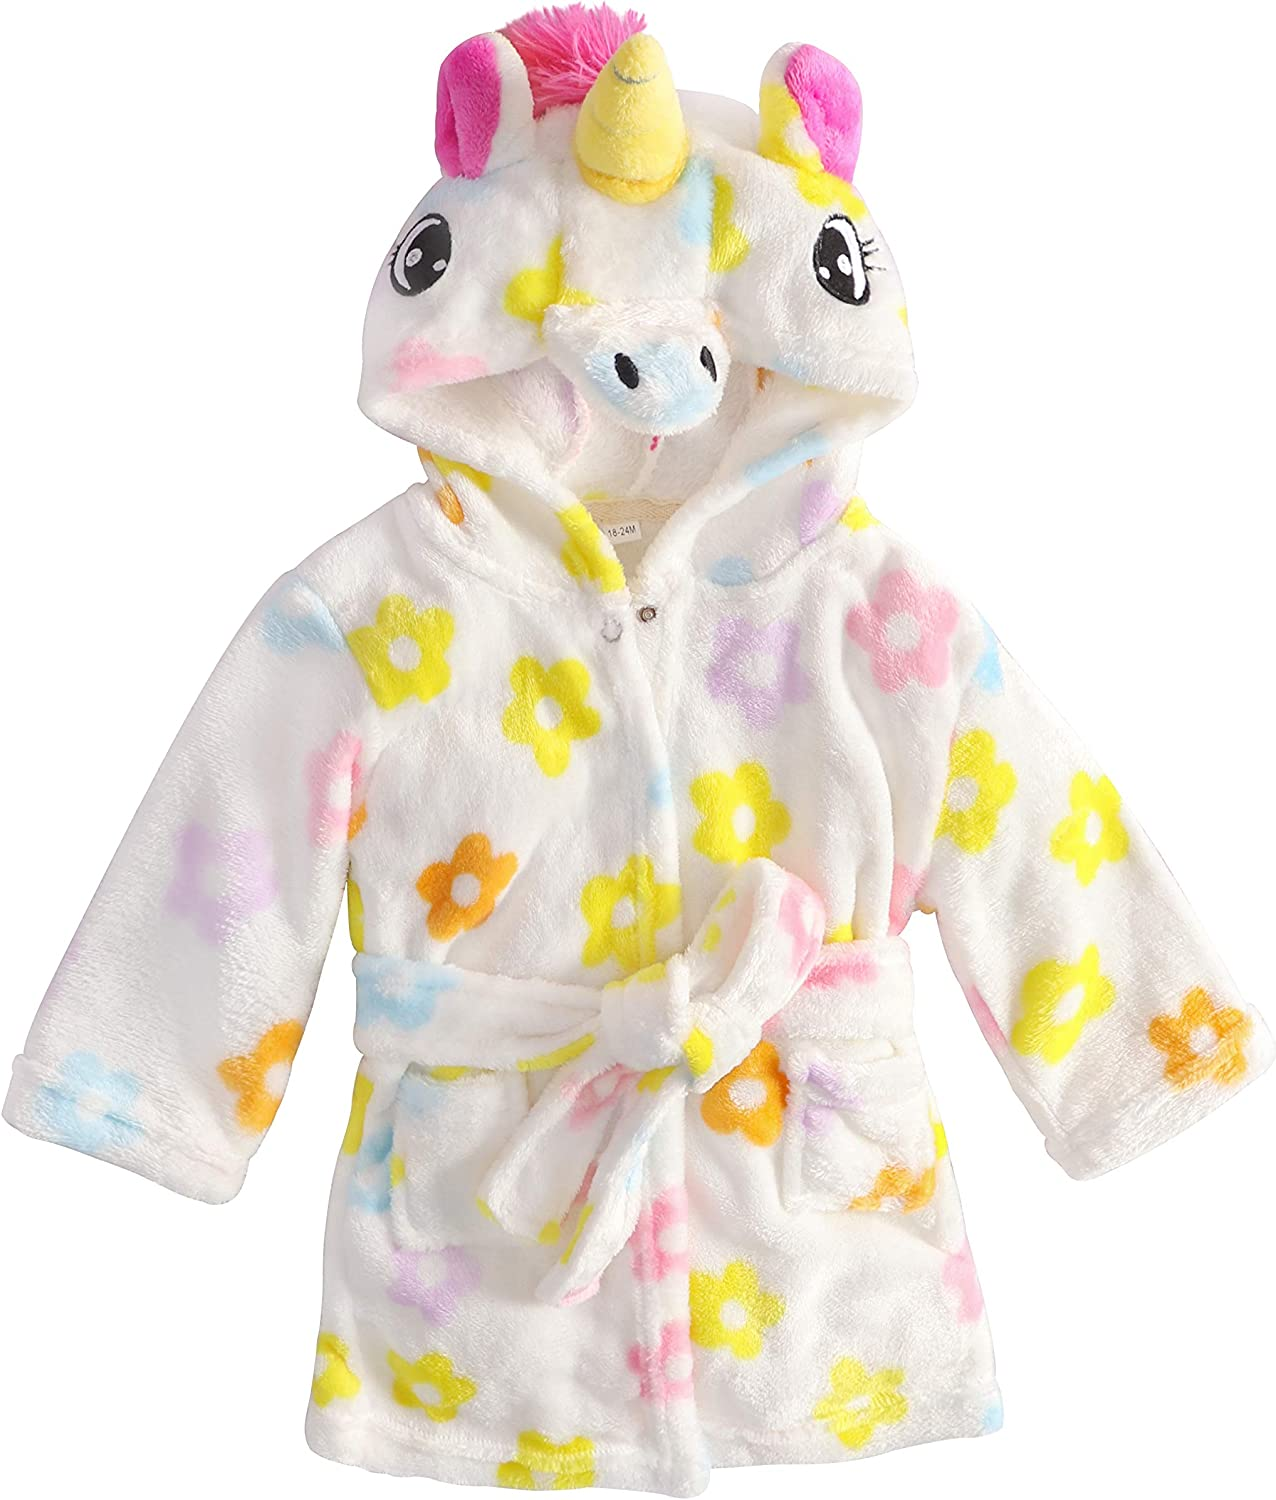 Soft Plush Animal Unicorn Hooded Robe for Baby Girls: Clothing